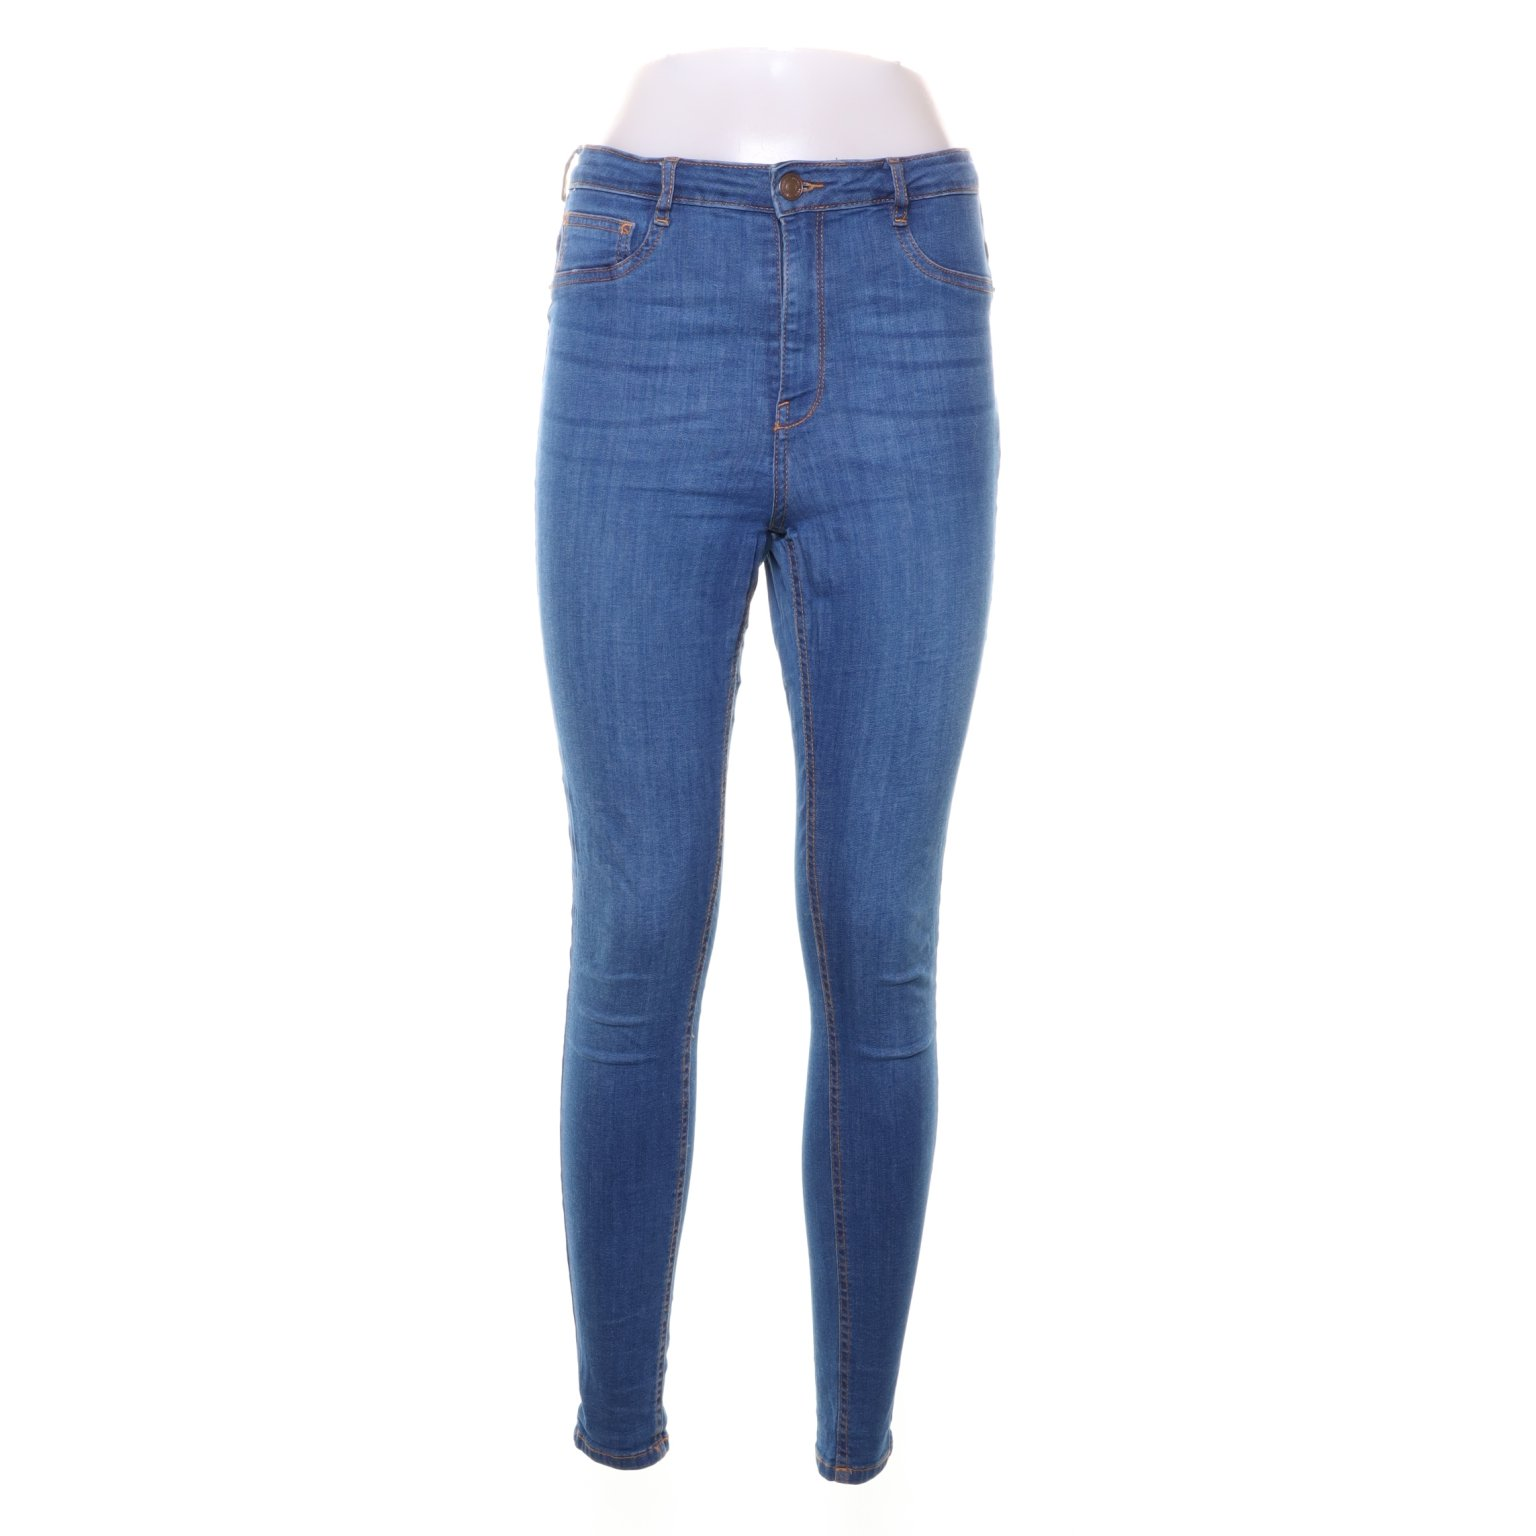 Perfect Jeans Gina Tricot, Treggings, Strl: L, Molly, Blå, Bomull/Elastan